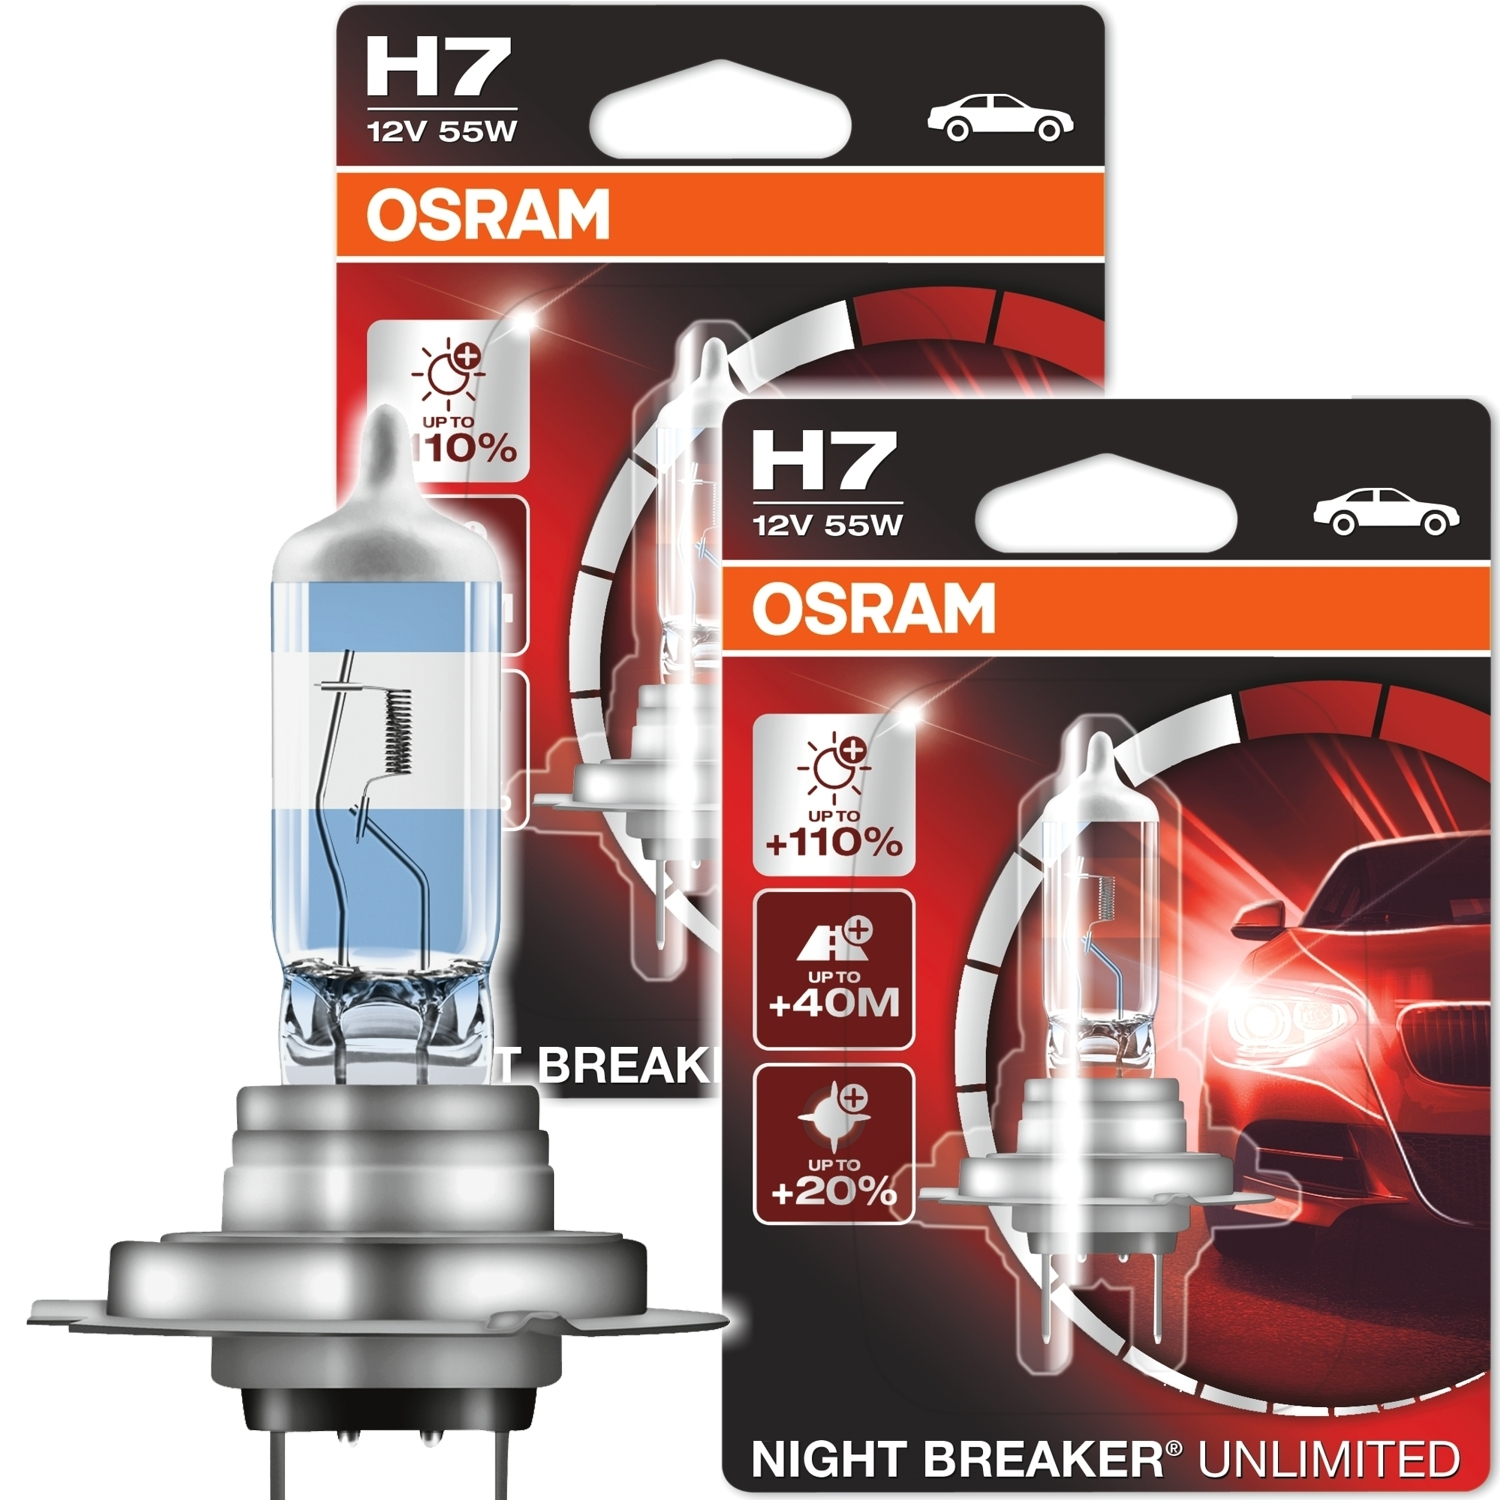 2x osram night breaker unlimited h7 12v 55w auto lampe halogen 64210nbu. Black Bedroom Furniture Sets. Home Design Ideas